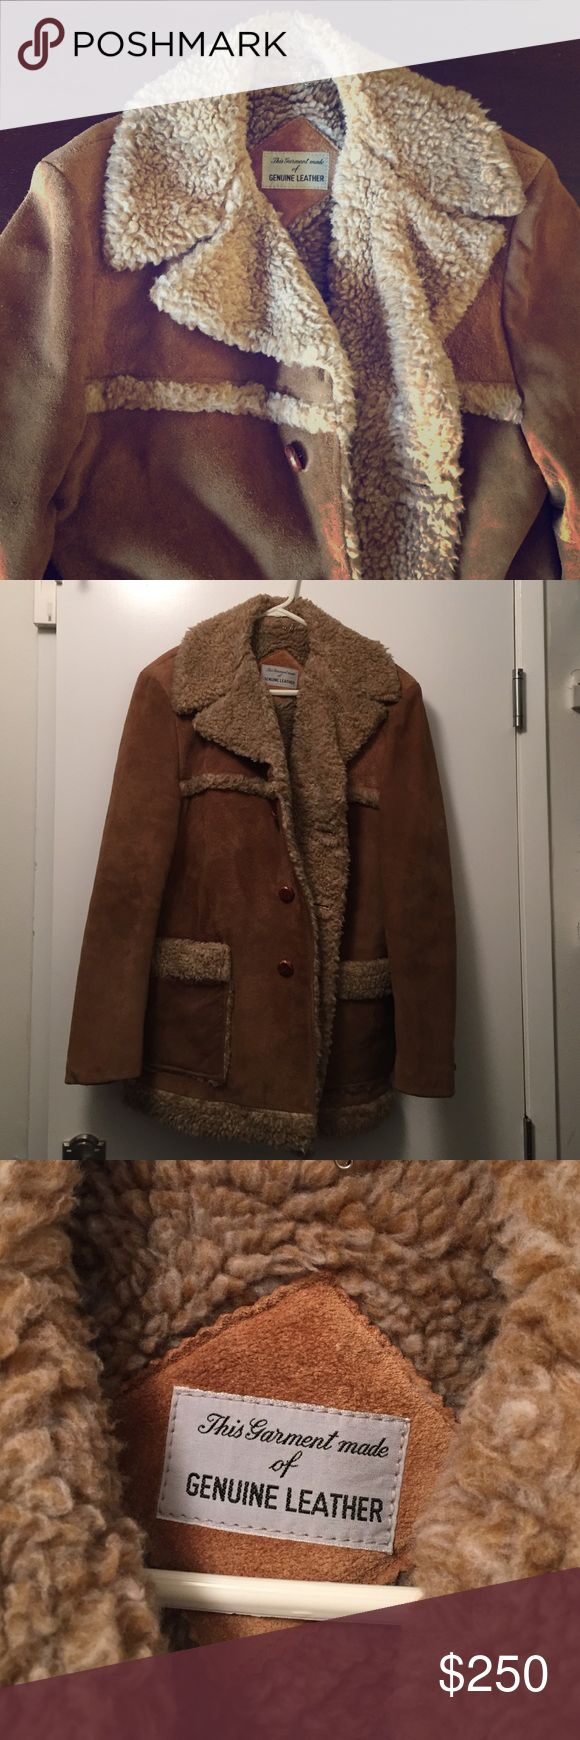 Vintage Men's Leather Jacket Brown men's genuine leather vintage jacket. Perfect for winter to keep you warm! Great condition and very well taken care of. Vintage Jackets & Coats Pea Coats